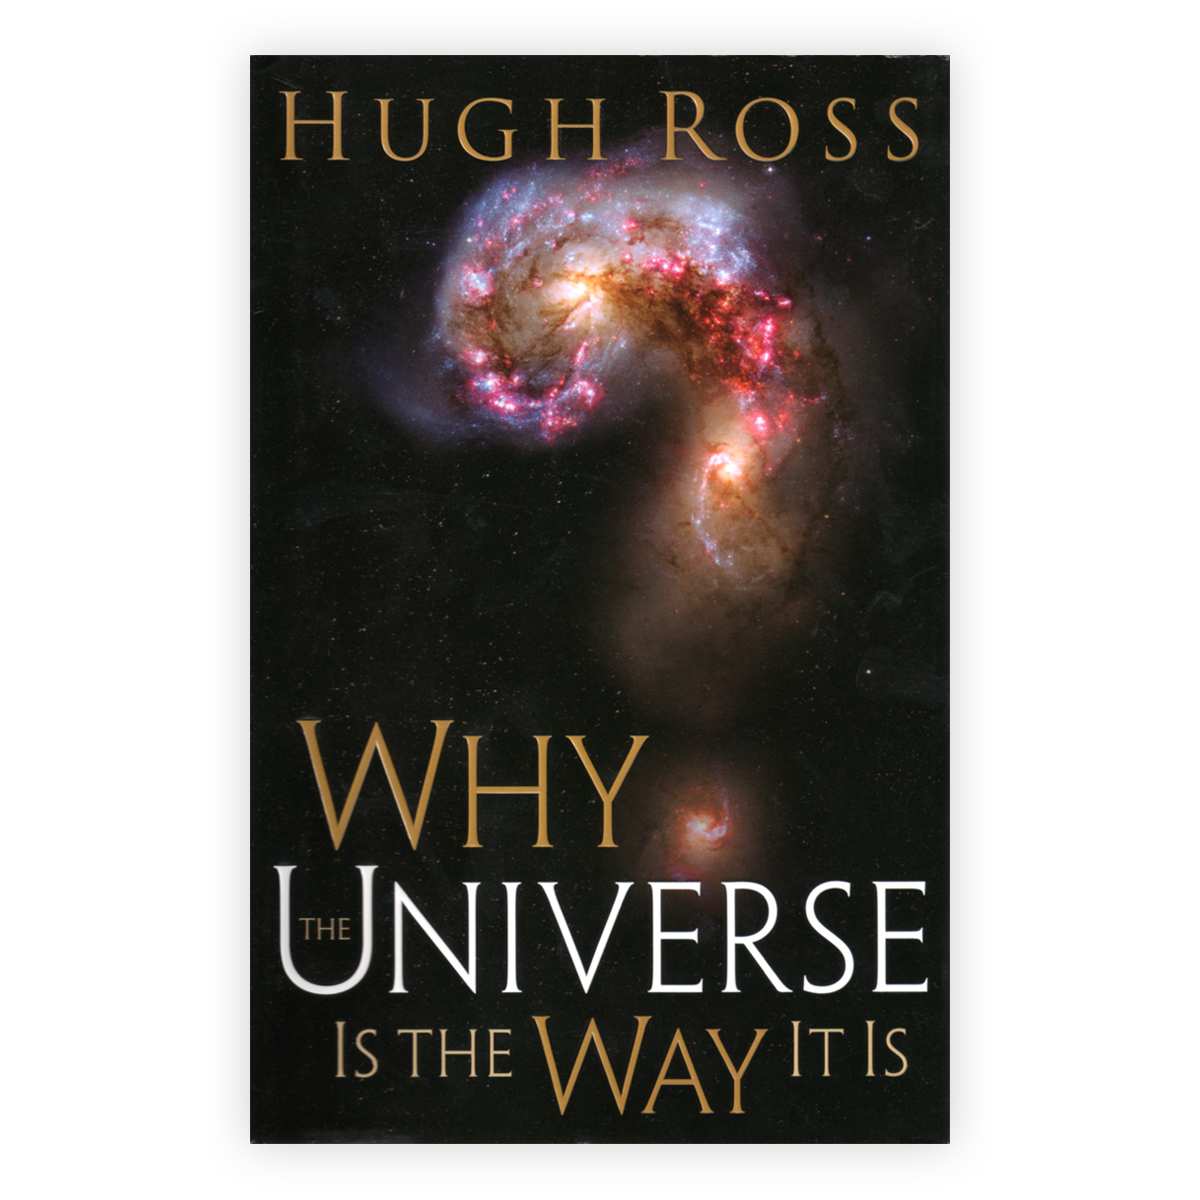 Why the Universe Is the Way It Is Image